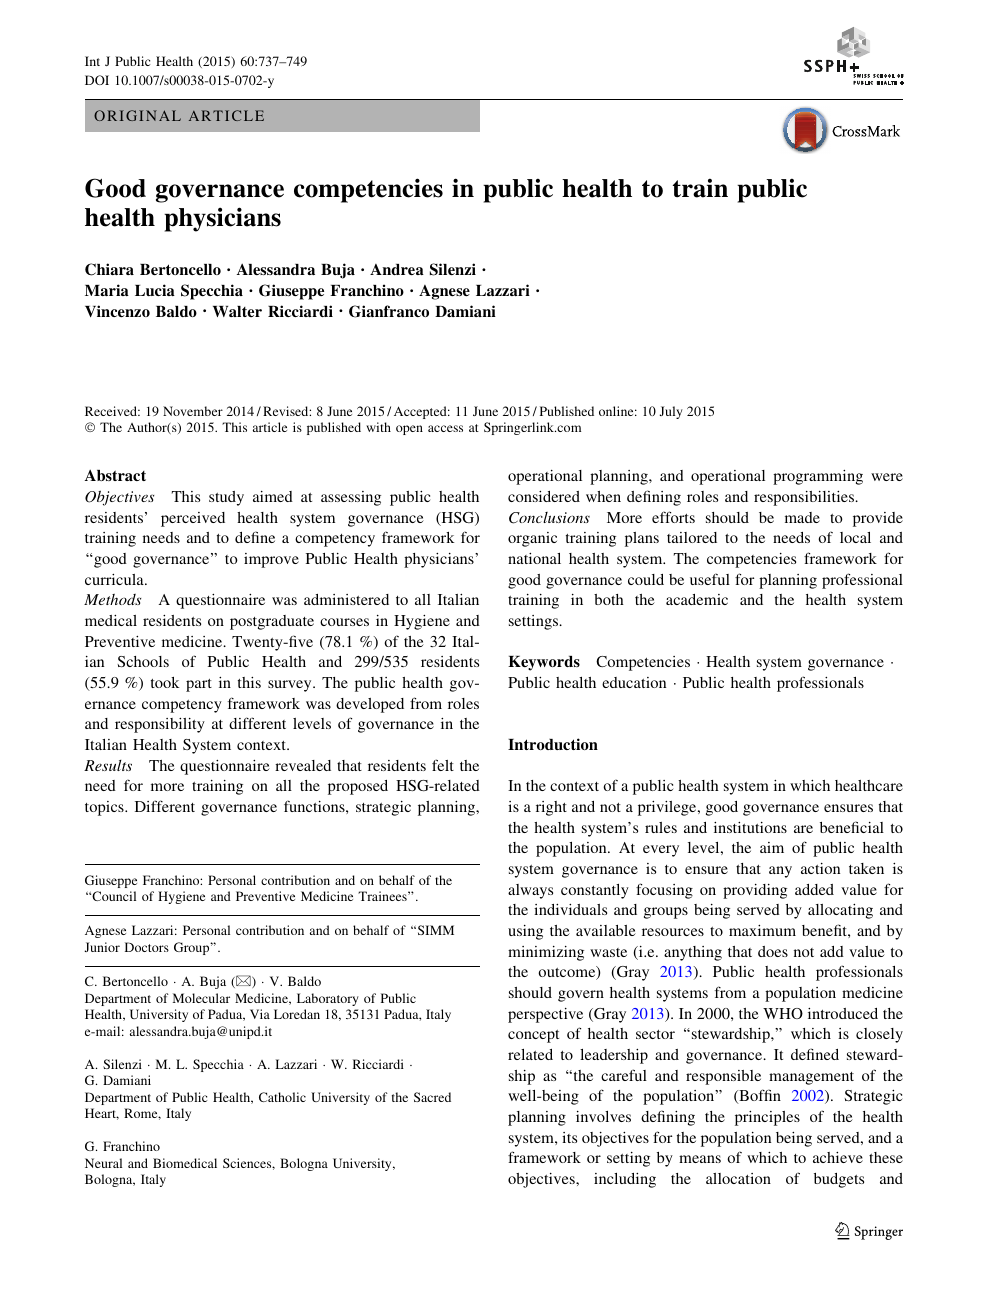 Good governance competencies in public health to train